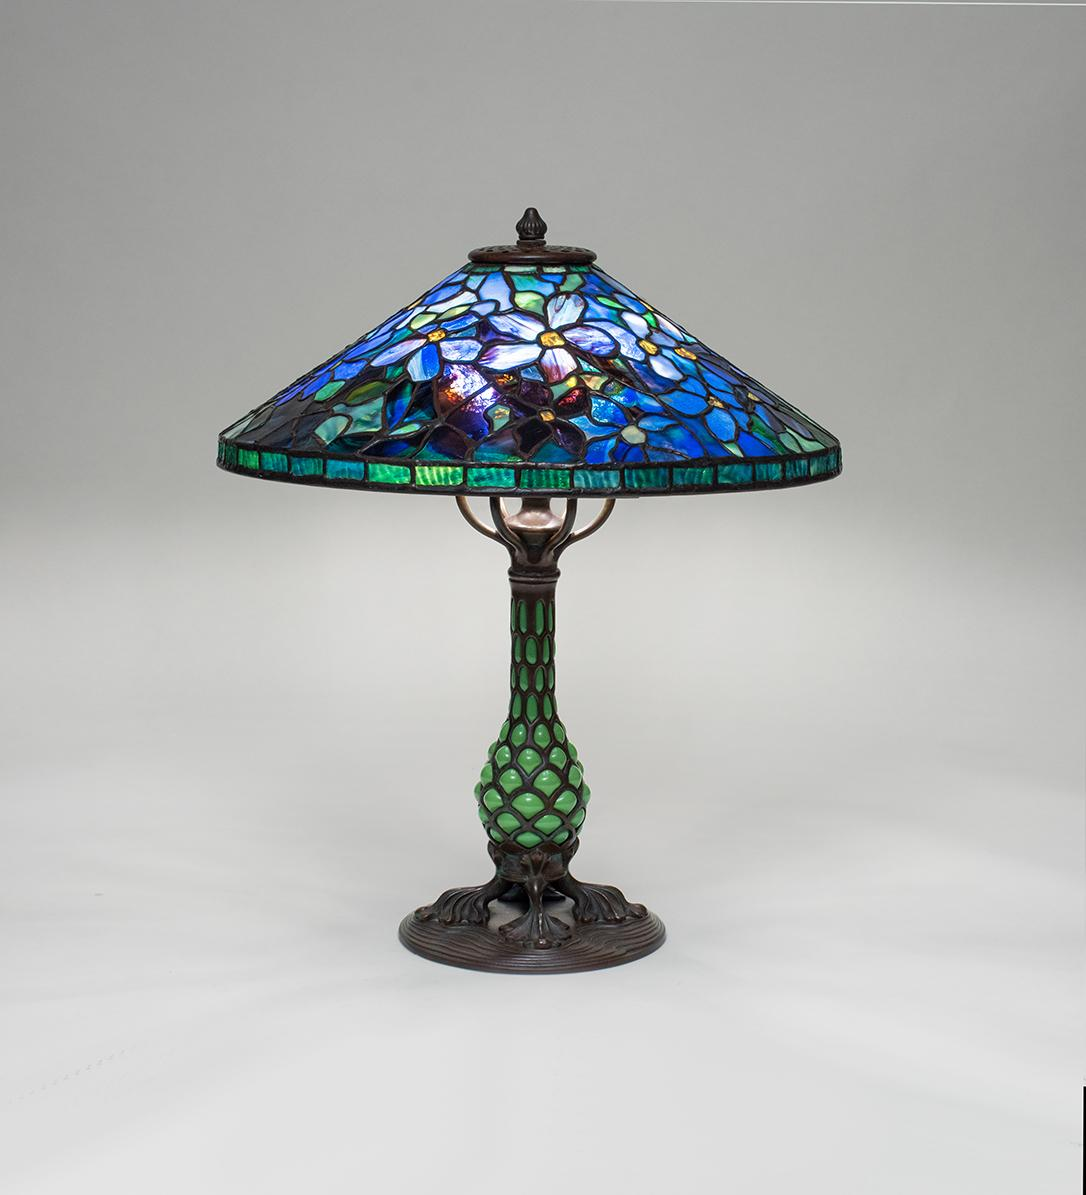 Tiffany Studios Clematis Table Lamp Tiffany Studios Lamps Catalogue Lillian Nassau Llc